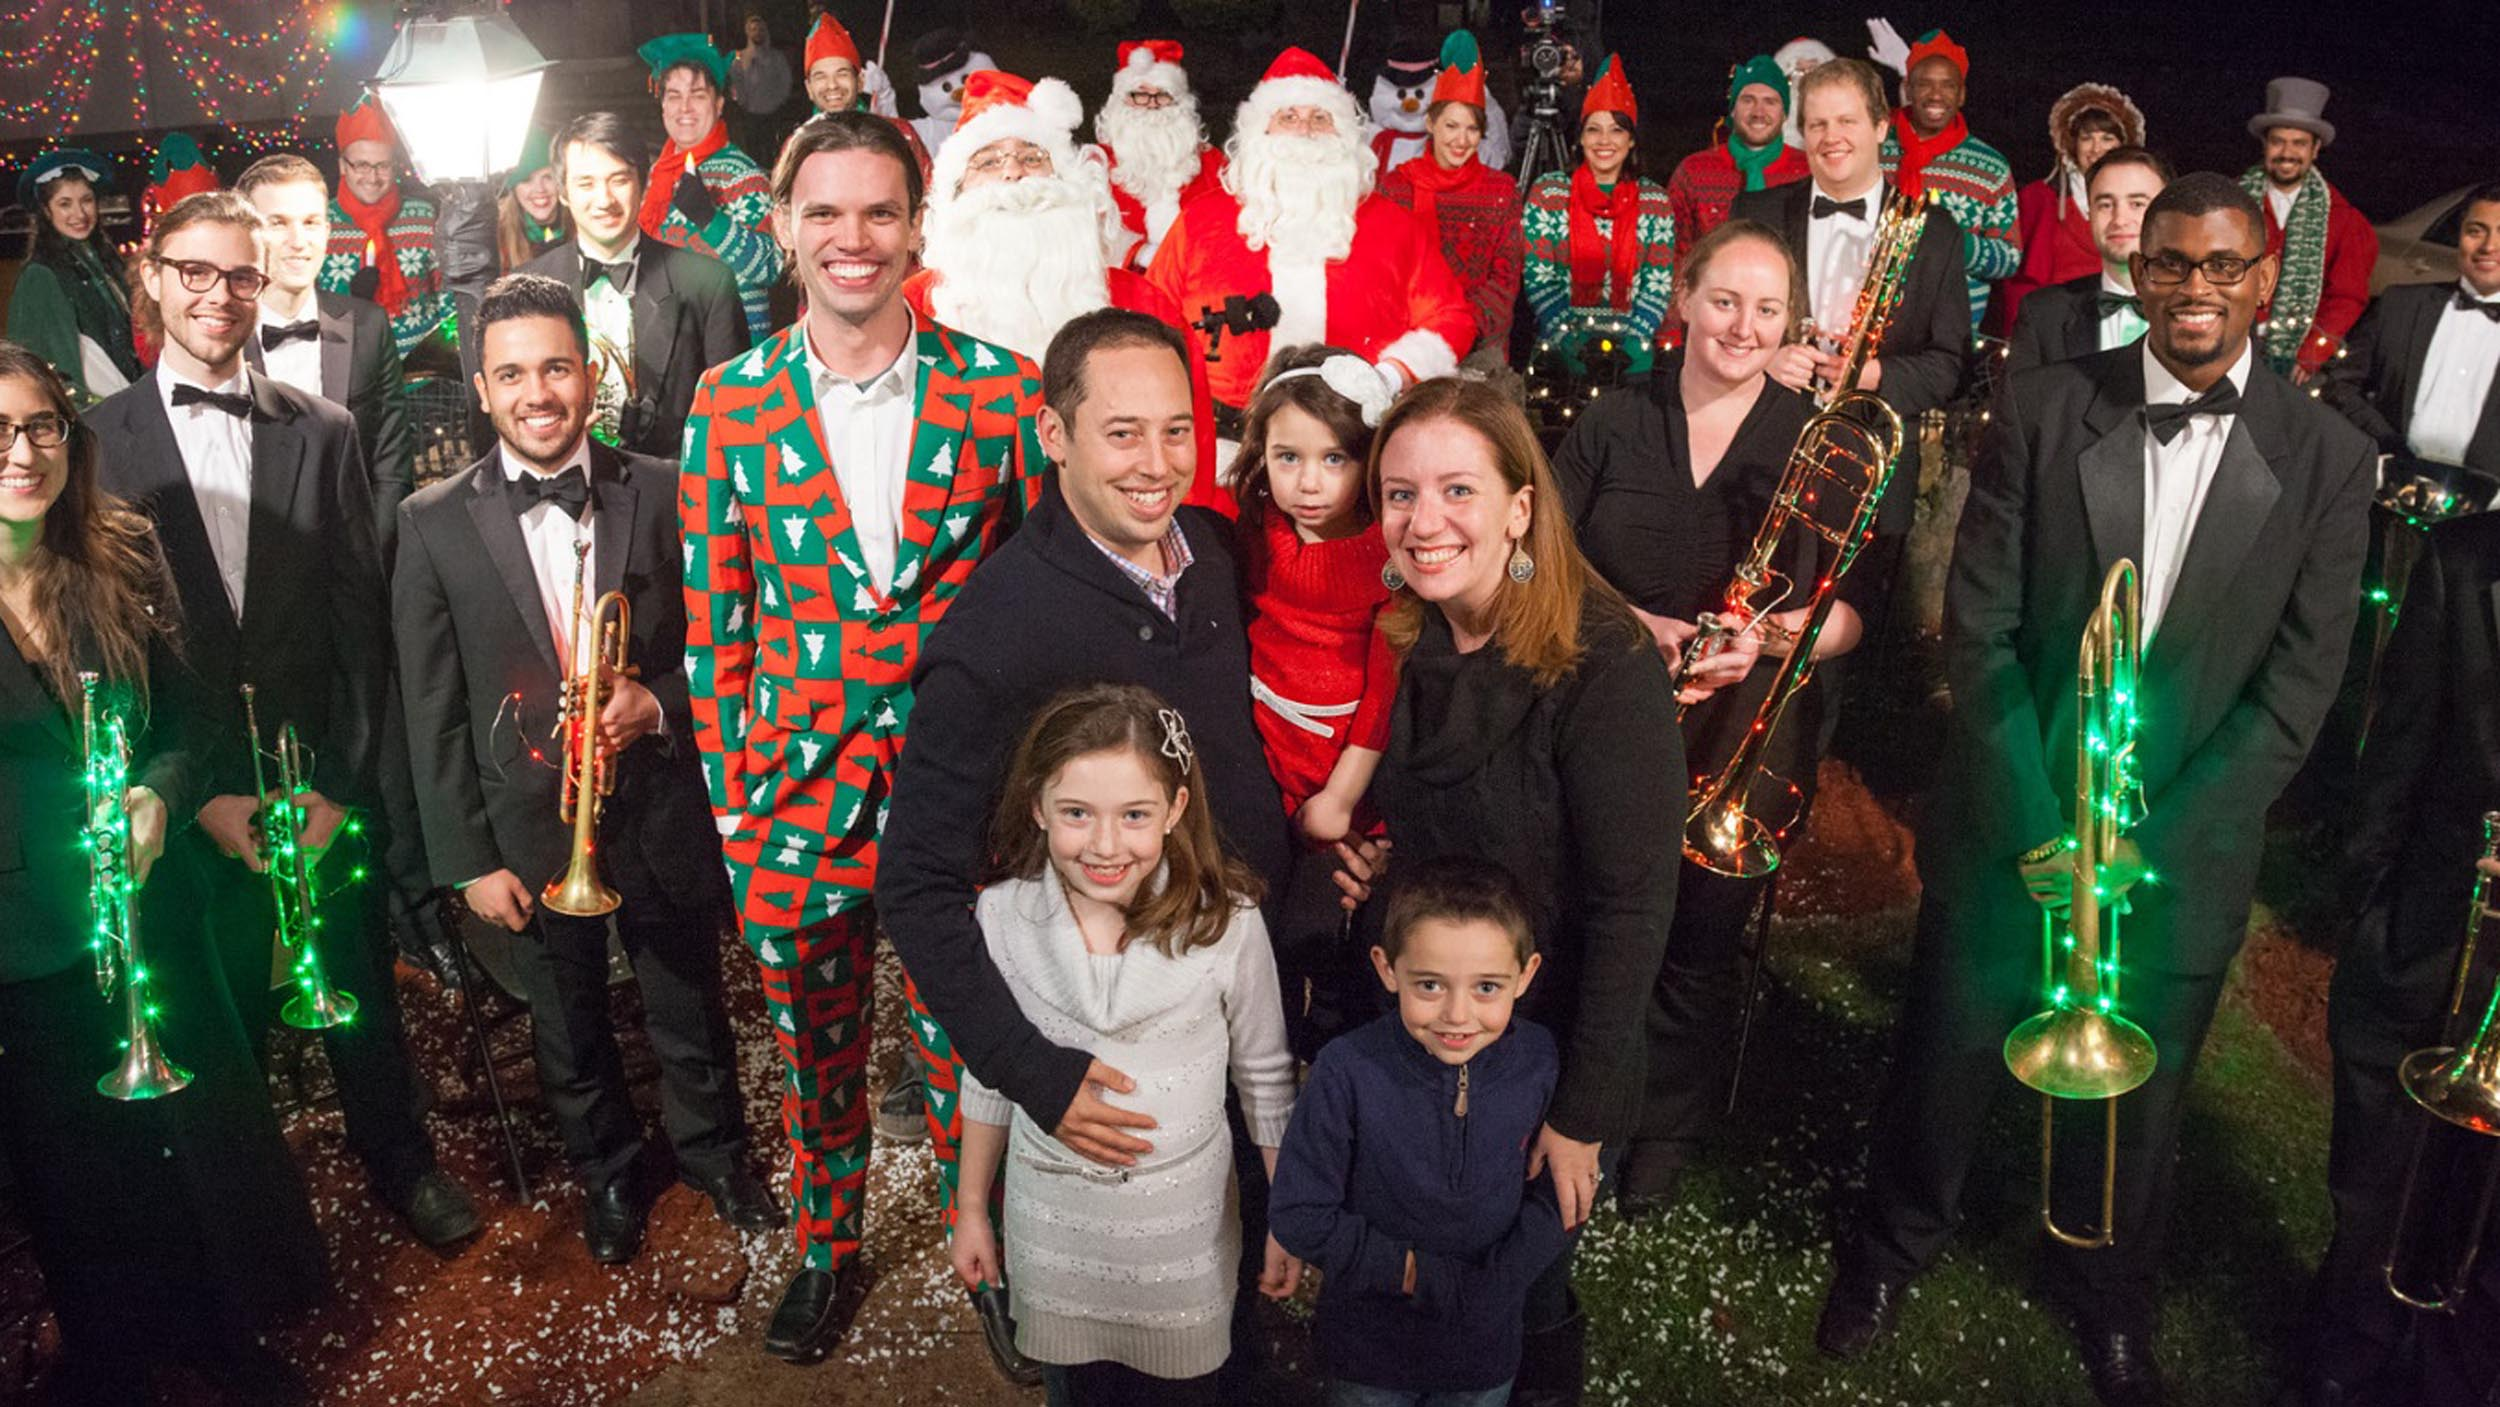 epic christmas caroling watch comedy group surprise family